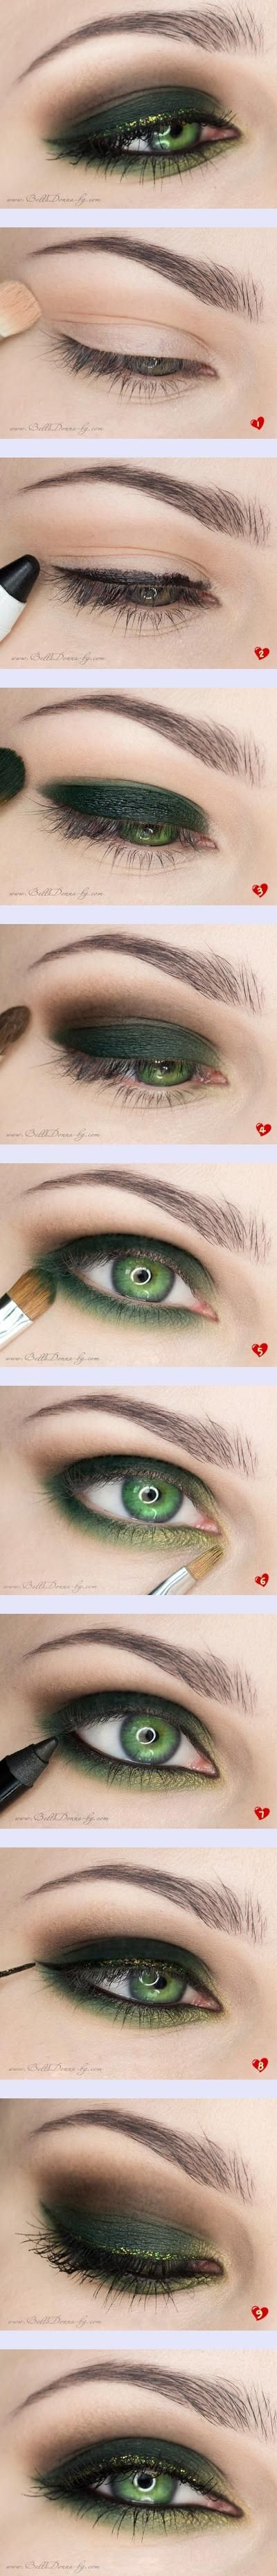 makeup for green eyes!